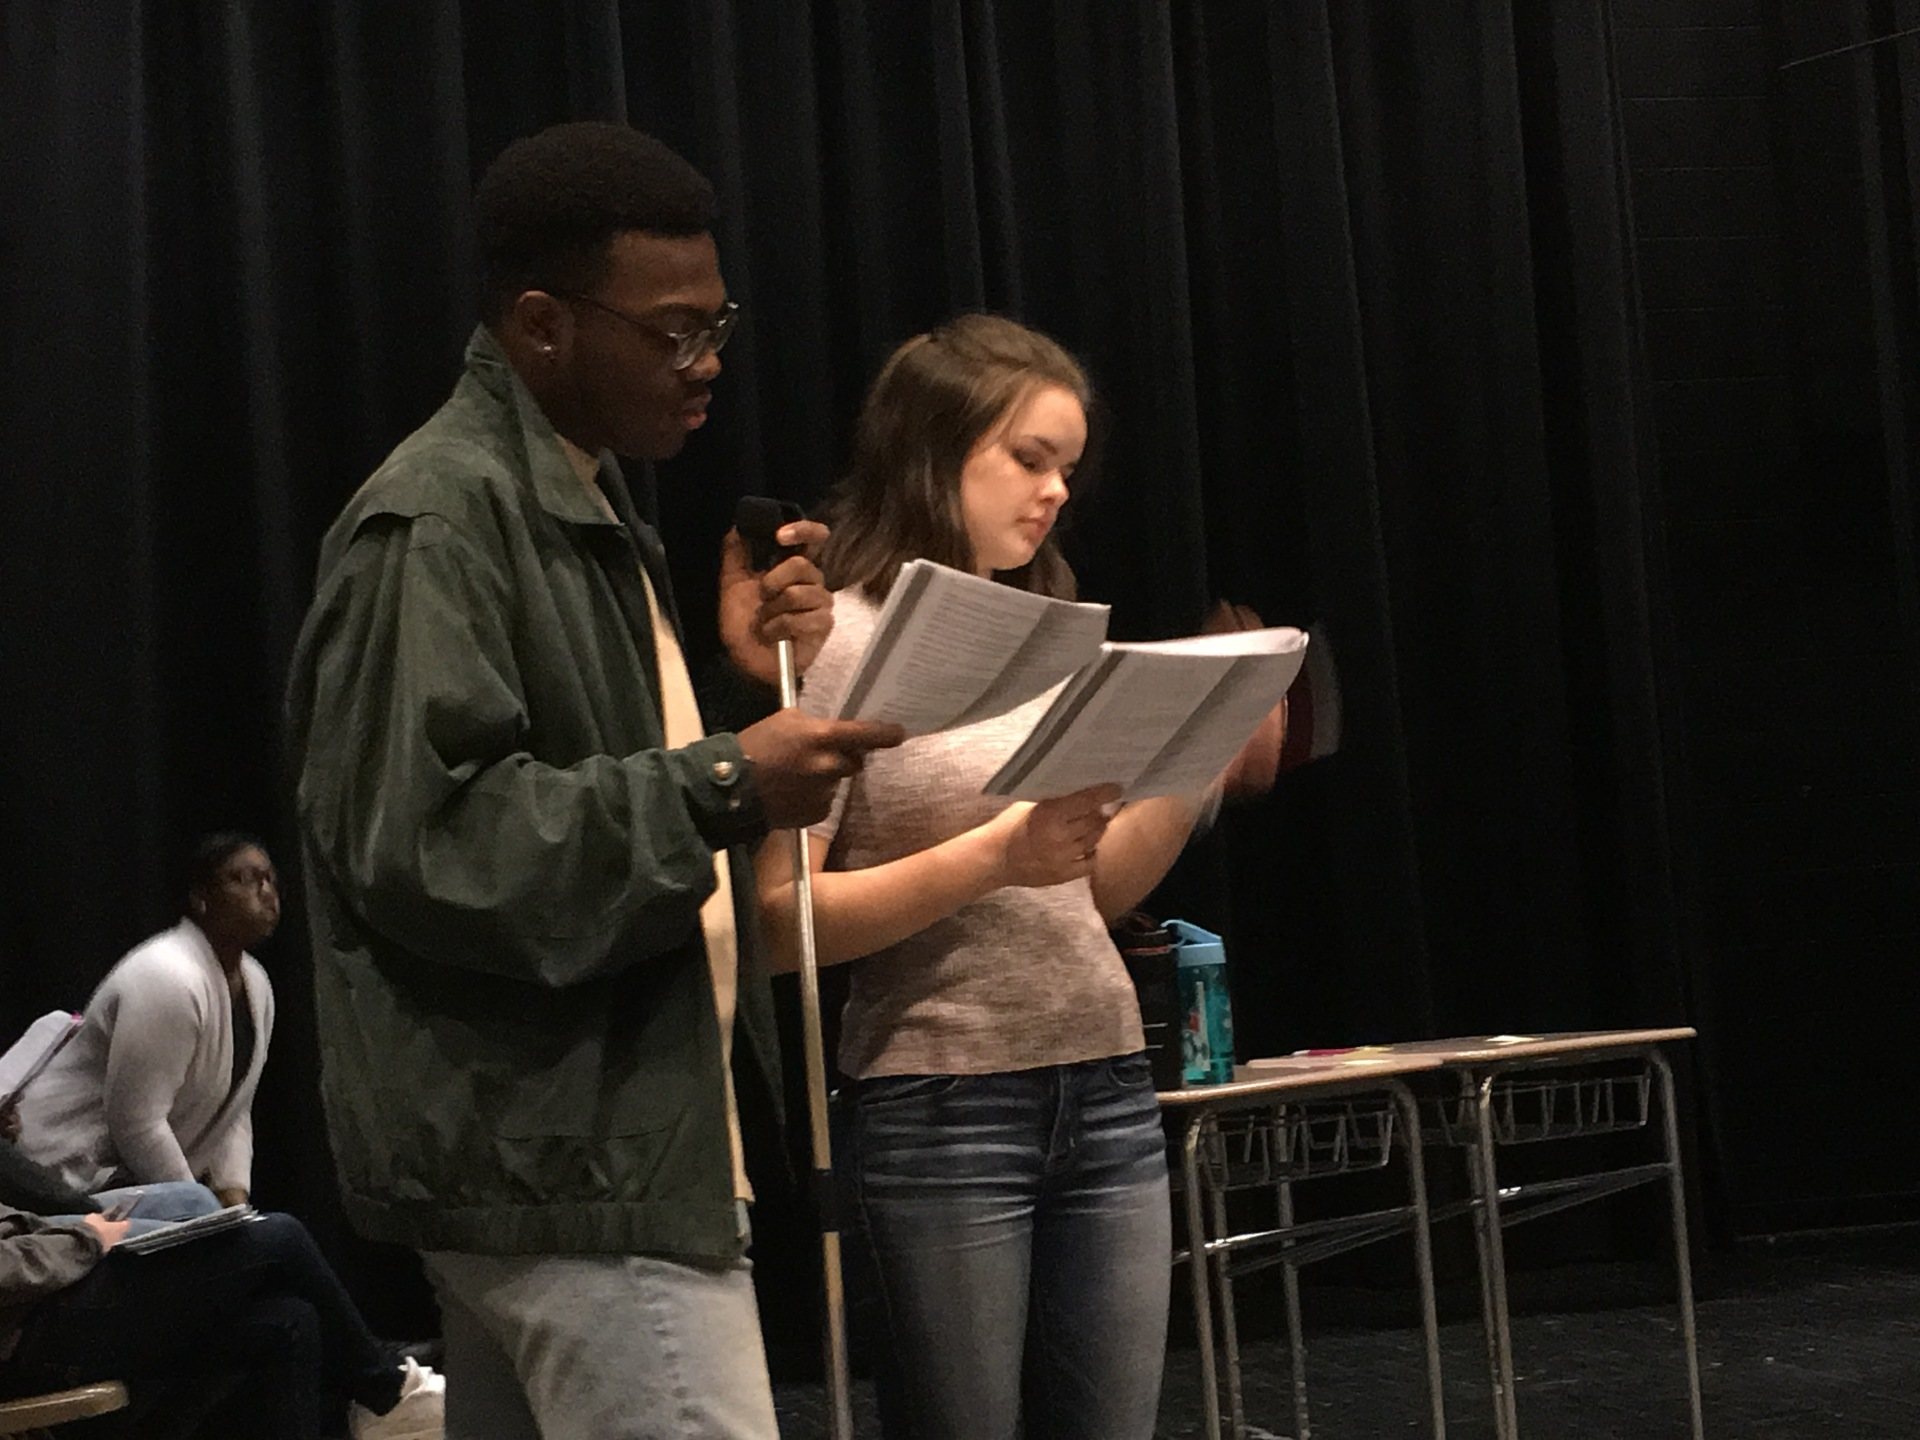 Theatre 2 students Tim Vance (Joseph) and Gracie Vogel (Clarence), rehearsing lines and blocking for